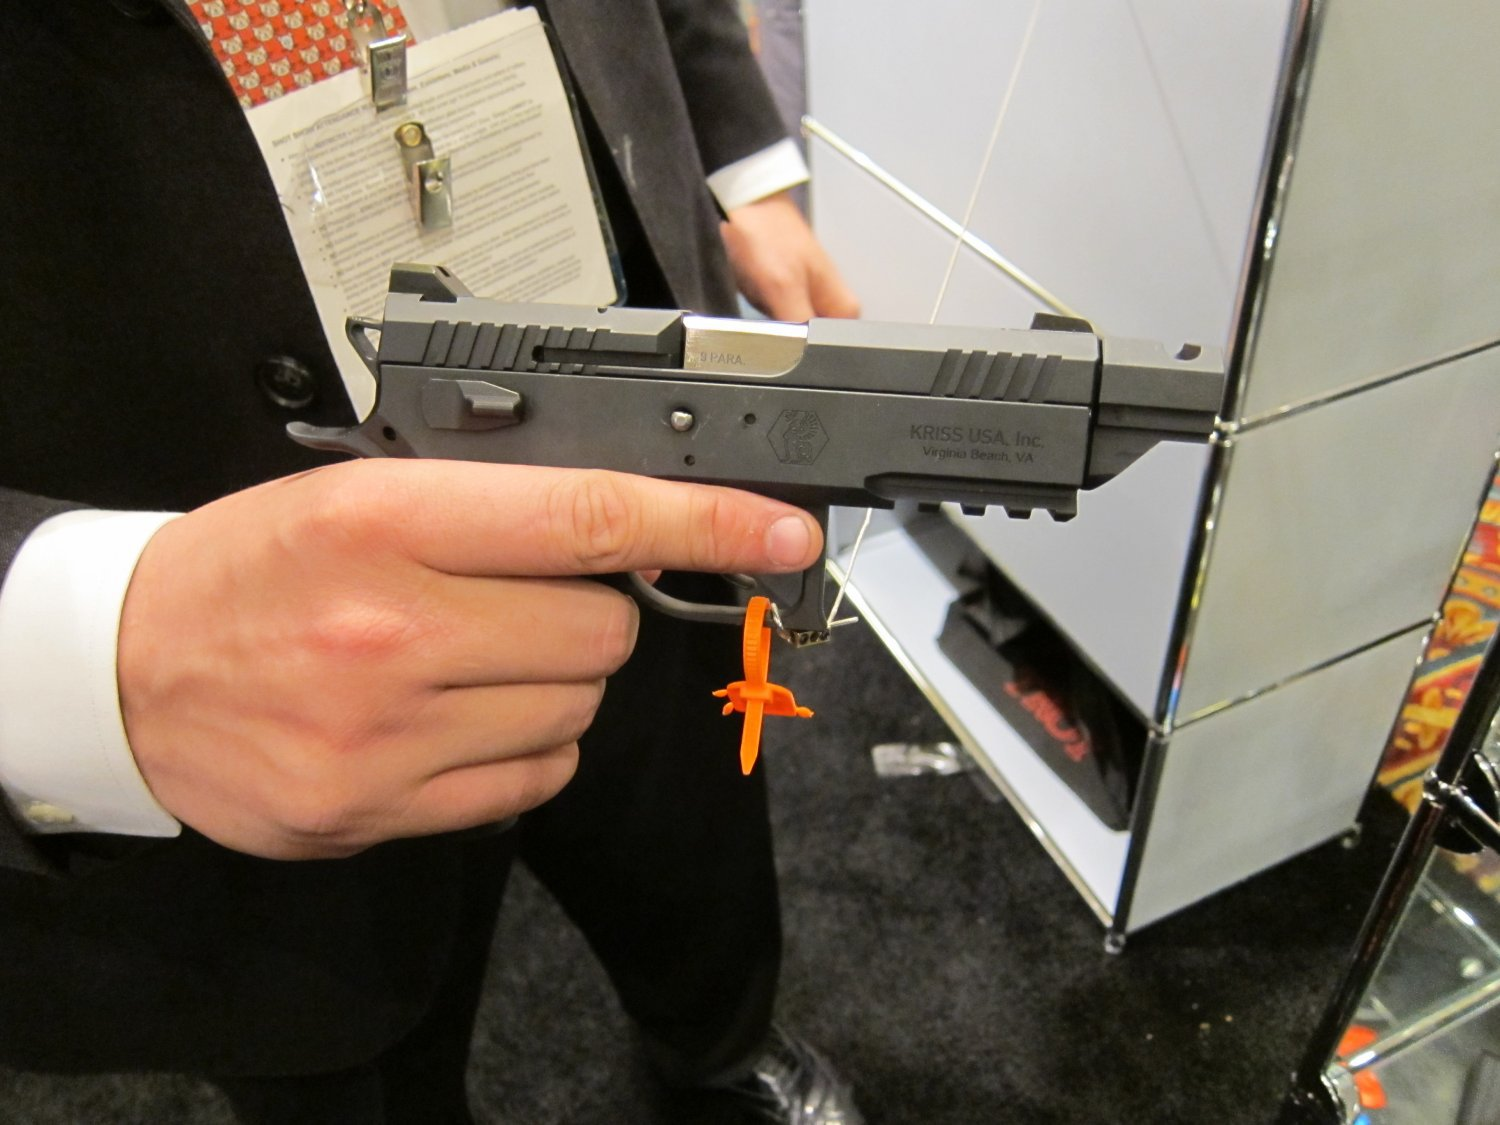 KRISS Sphinx Tactical Pistols 12 <!  :en  >KRISS Sphinx Tactical Pistols and DEFIANCE Silencer/Sound Suppressors at SHOT Show 2011: High End Swiss Tactical Pistols for Military Special Operations, Law Enforcement SWAT Ops, and Competitive Shooting<!  :  >